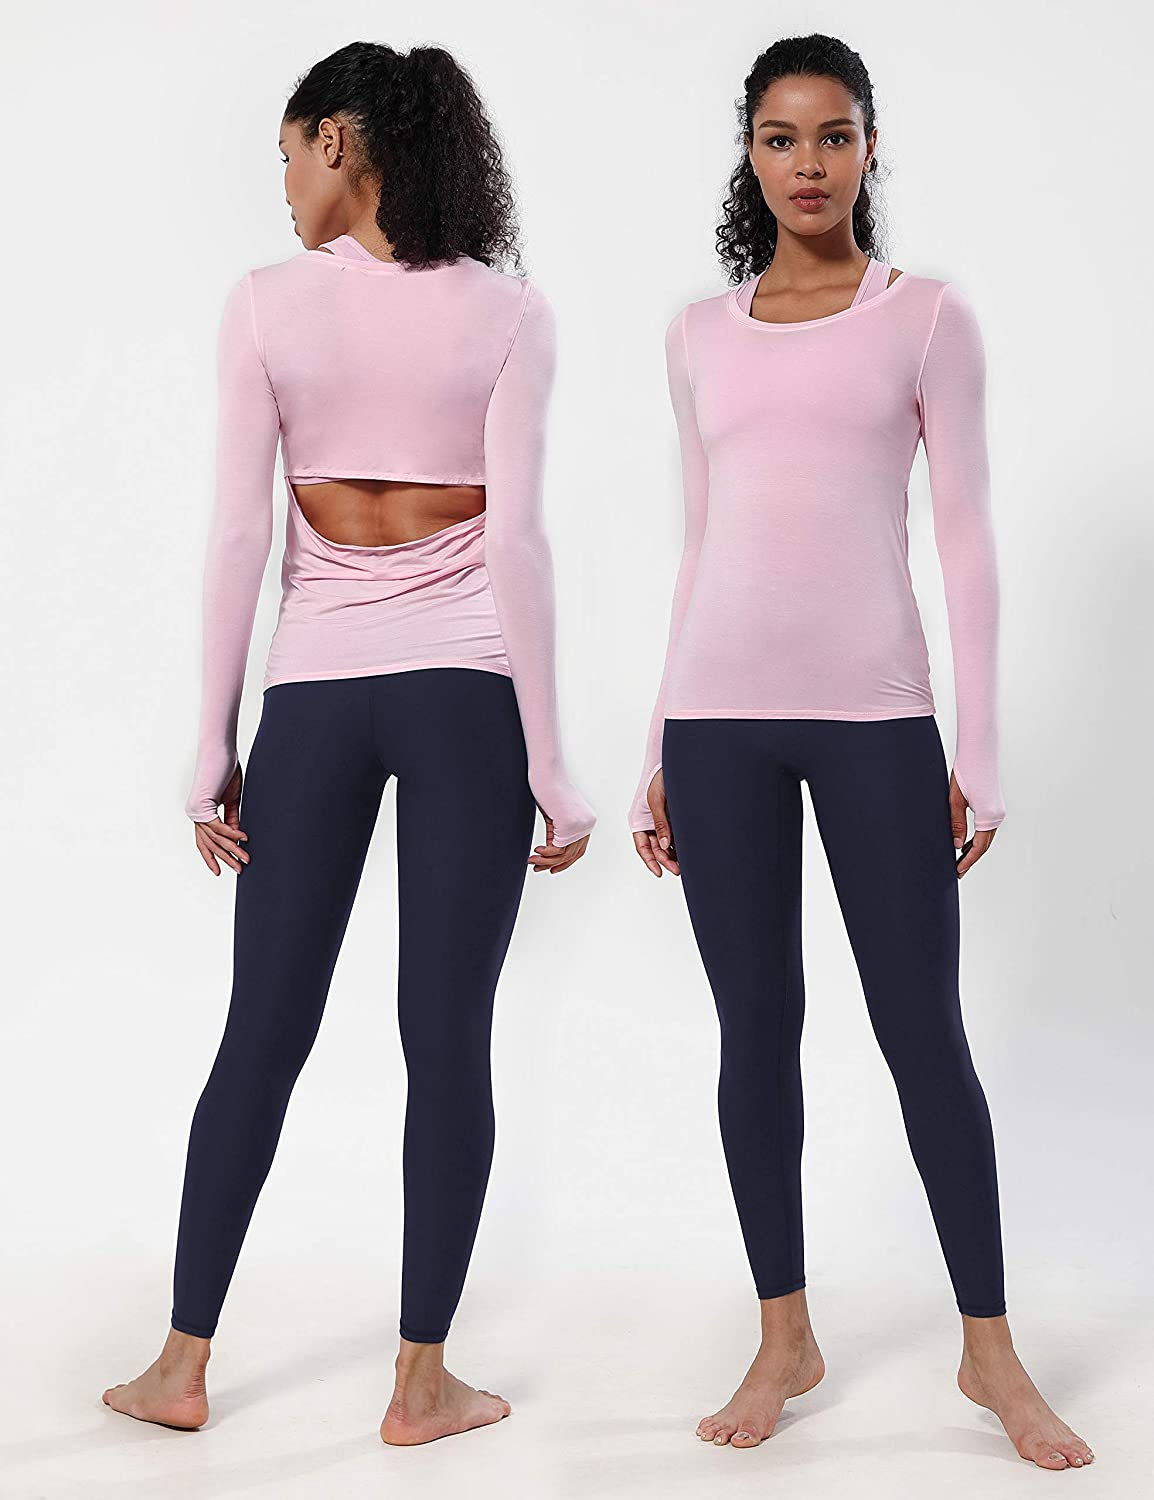 BUBBLELIME 4 Styles Petite//Tall Womens High Waist Yoga Leggings Over The Heel Soft Tummy Control Extra Long Workout Pants